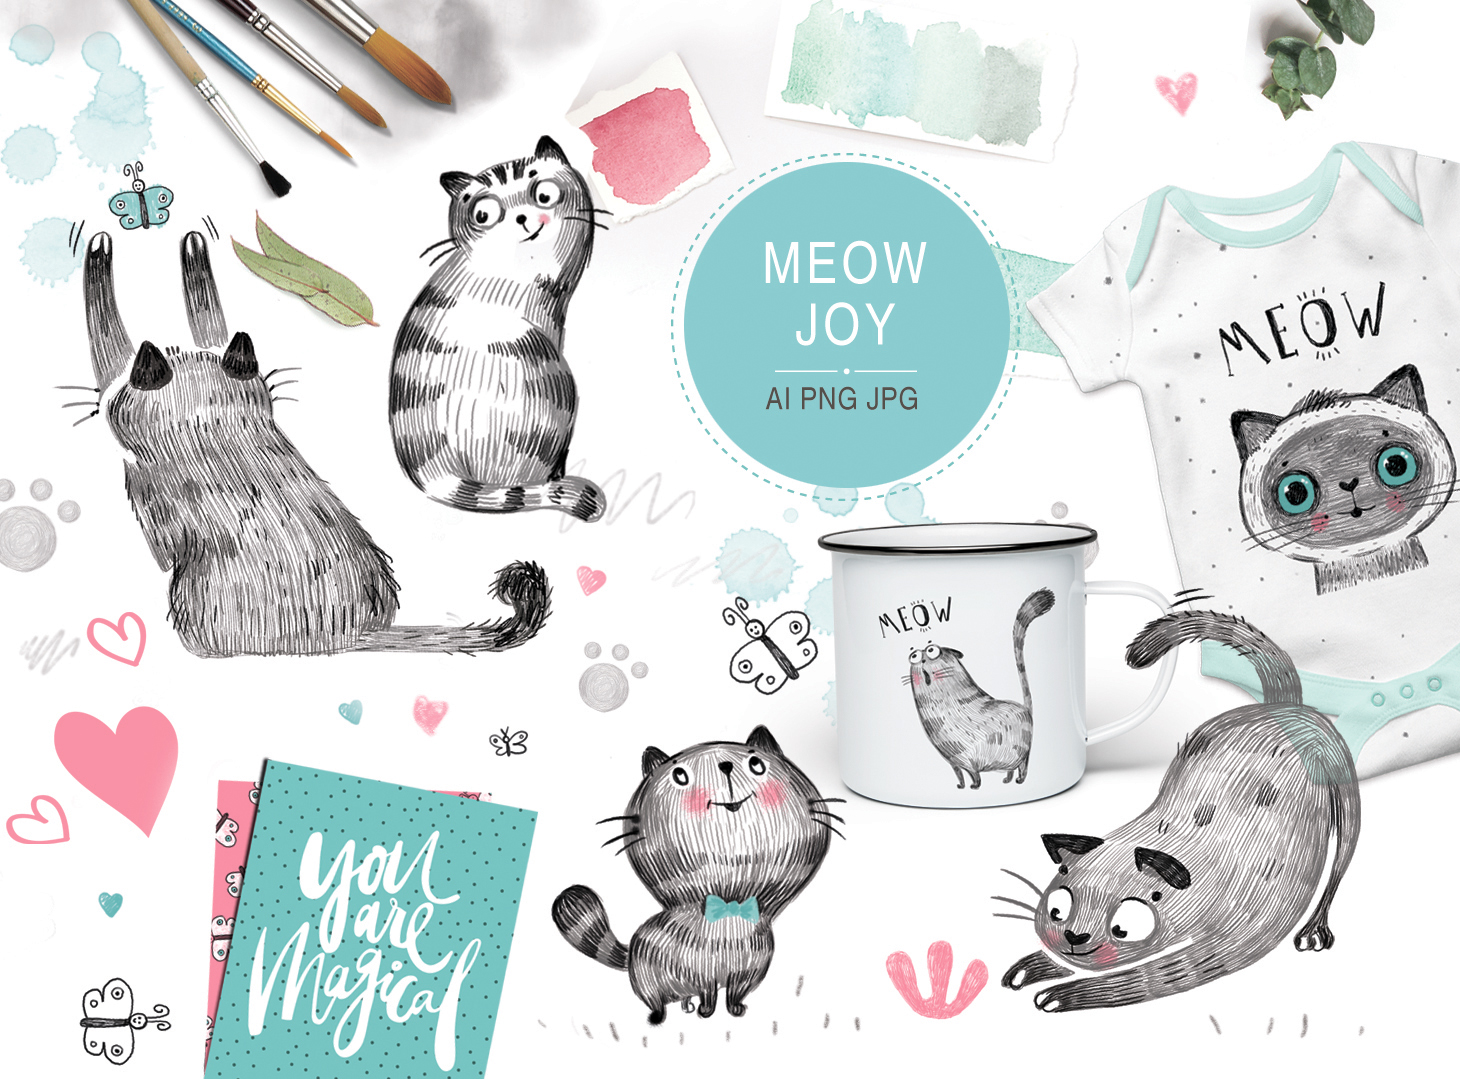 MEOW Joy (graphic Pack) Grafik Illustrationen von sto-va